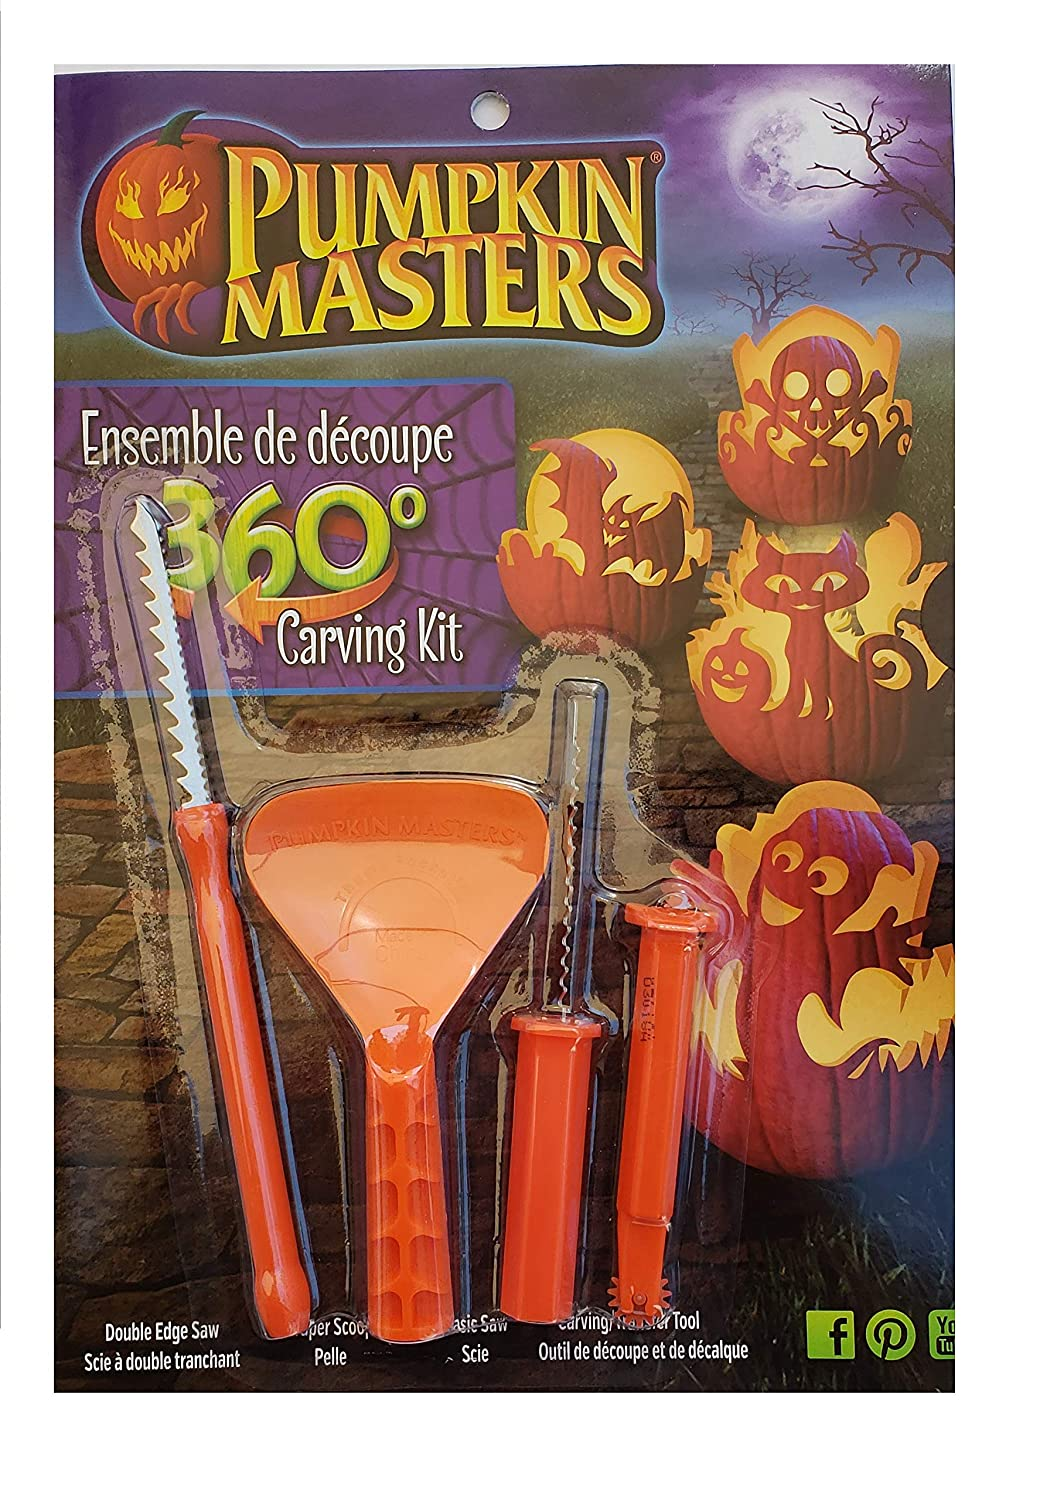 Pumpkin Masters Pumpkin Carving Kit 360 Degree Carving Kit